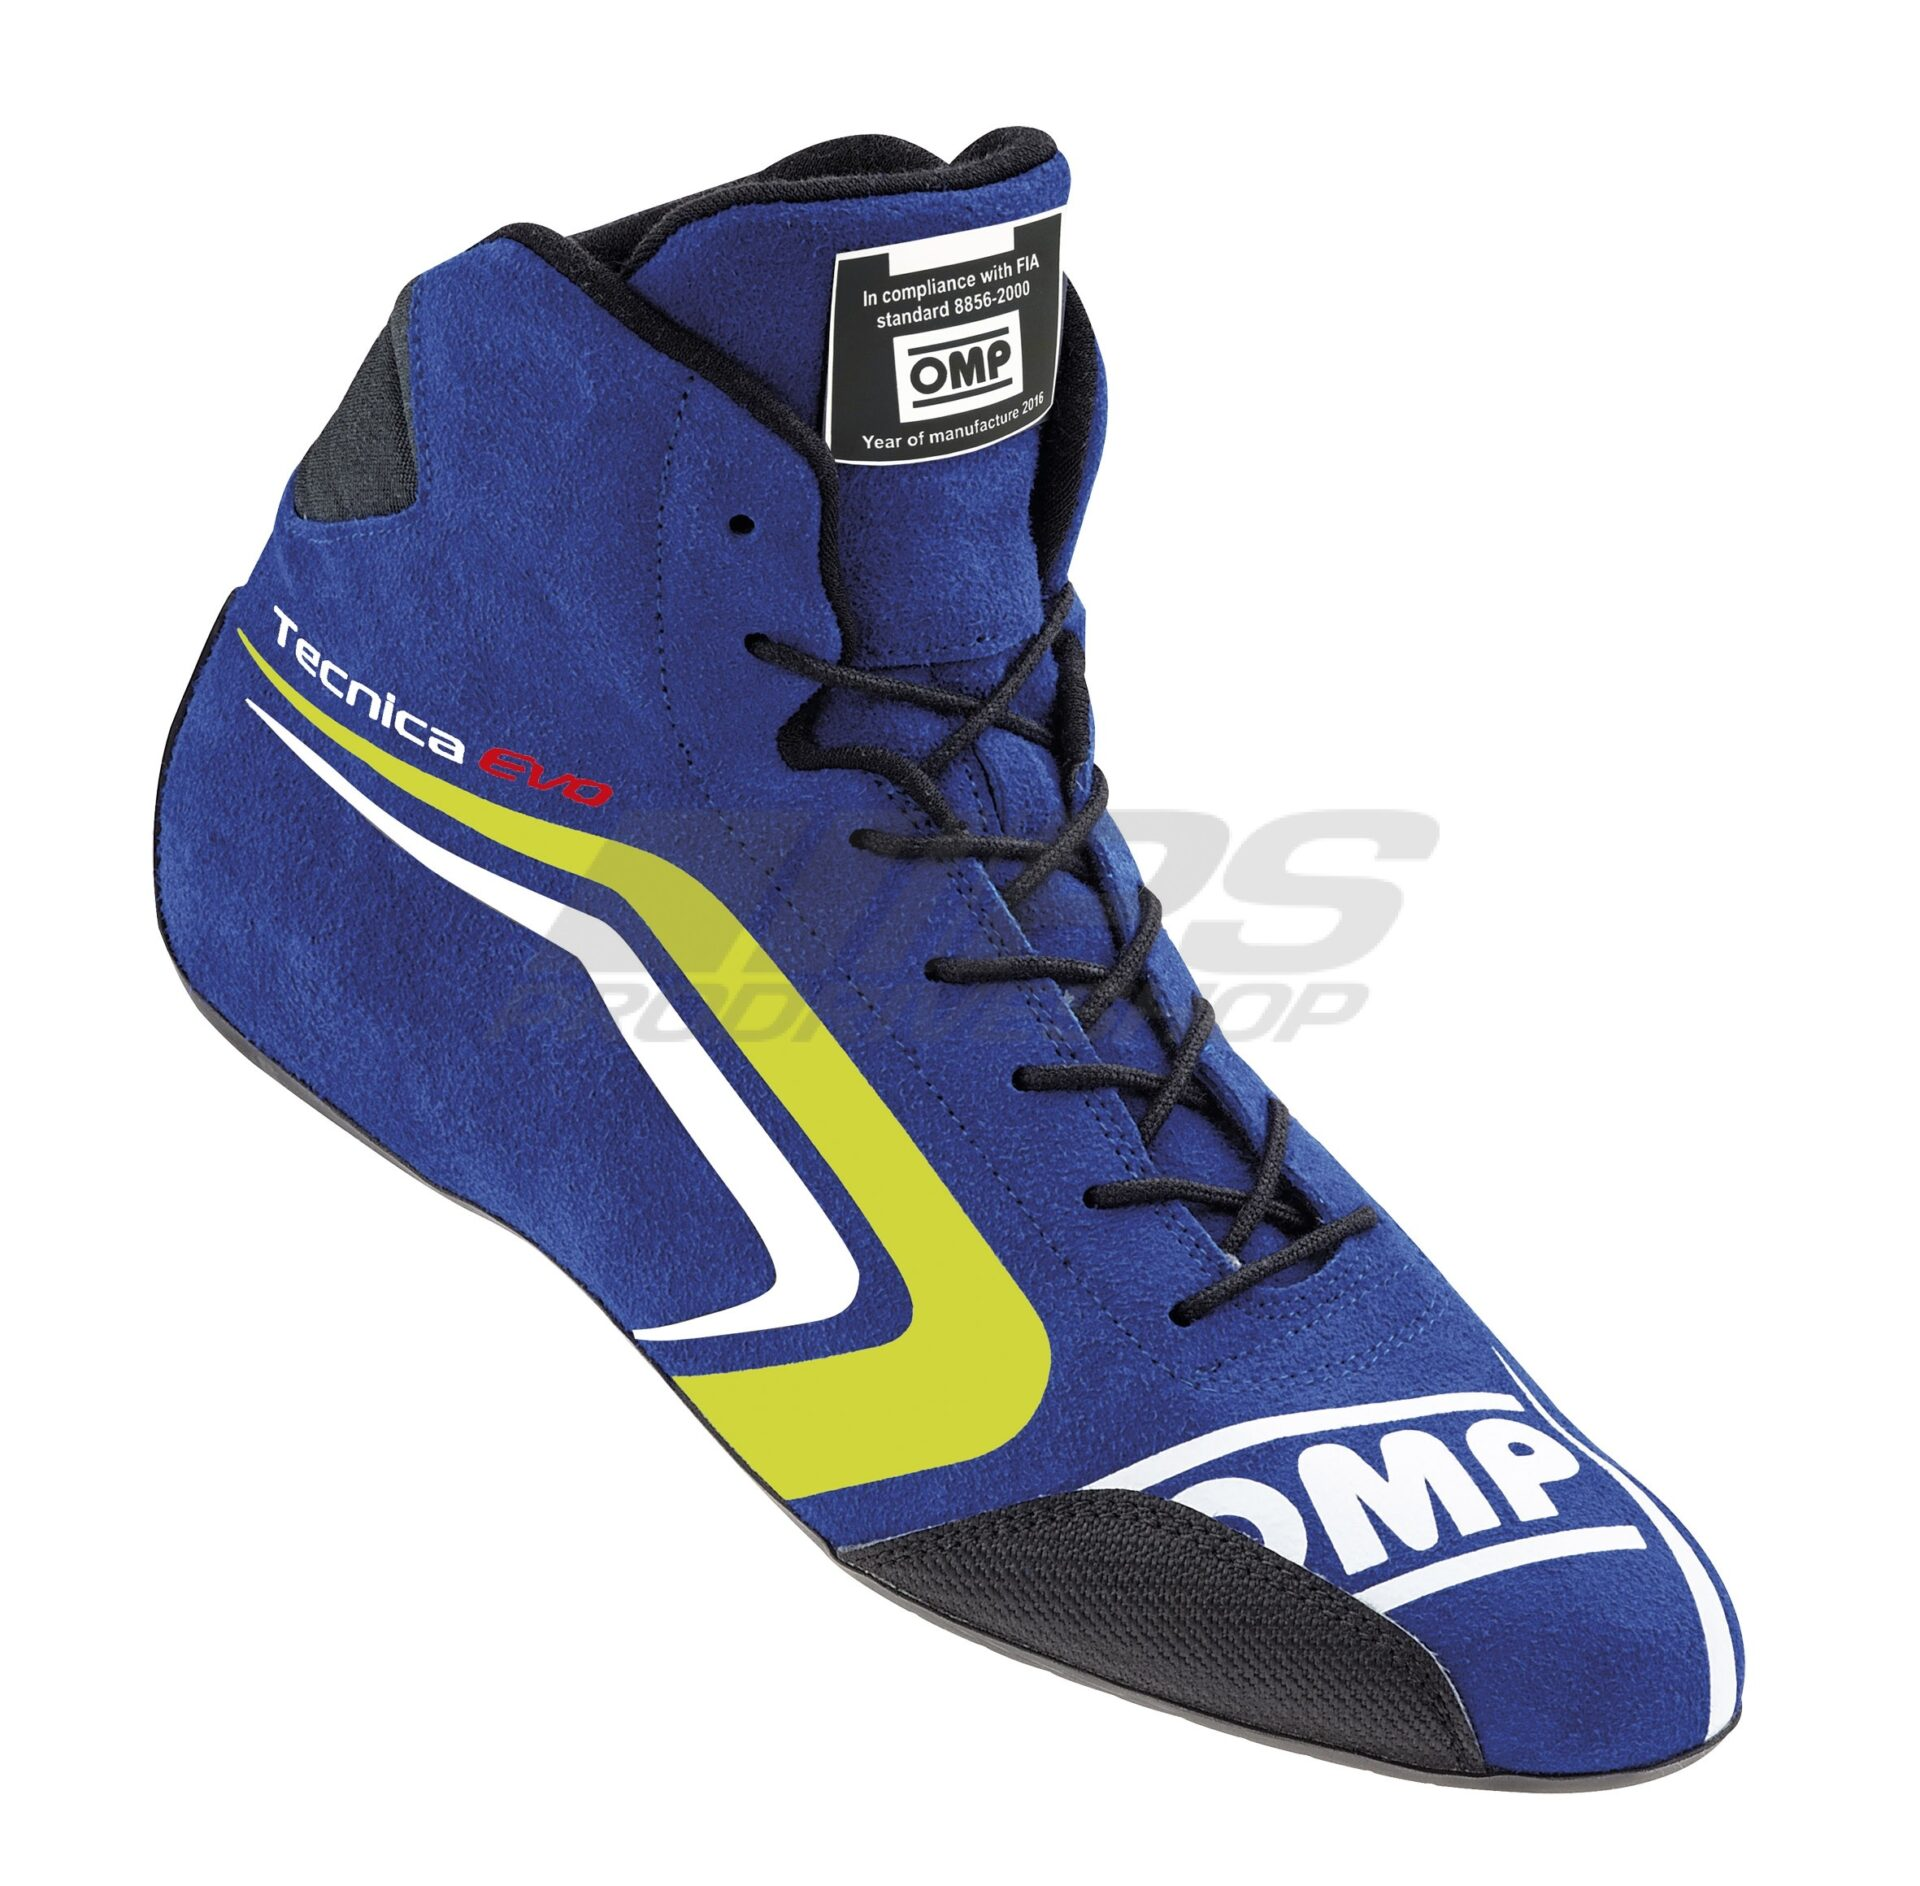 TECNICA EVO SHOES